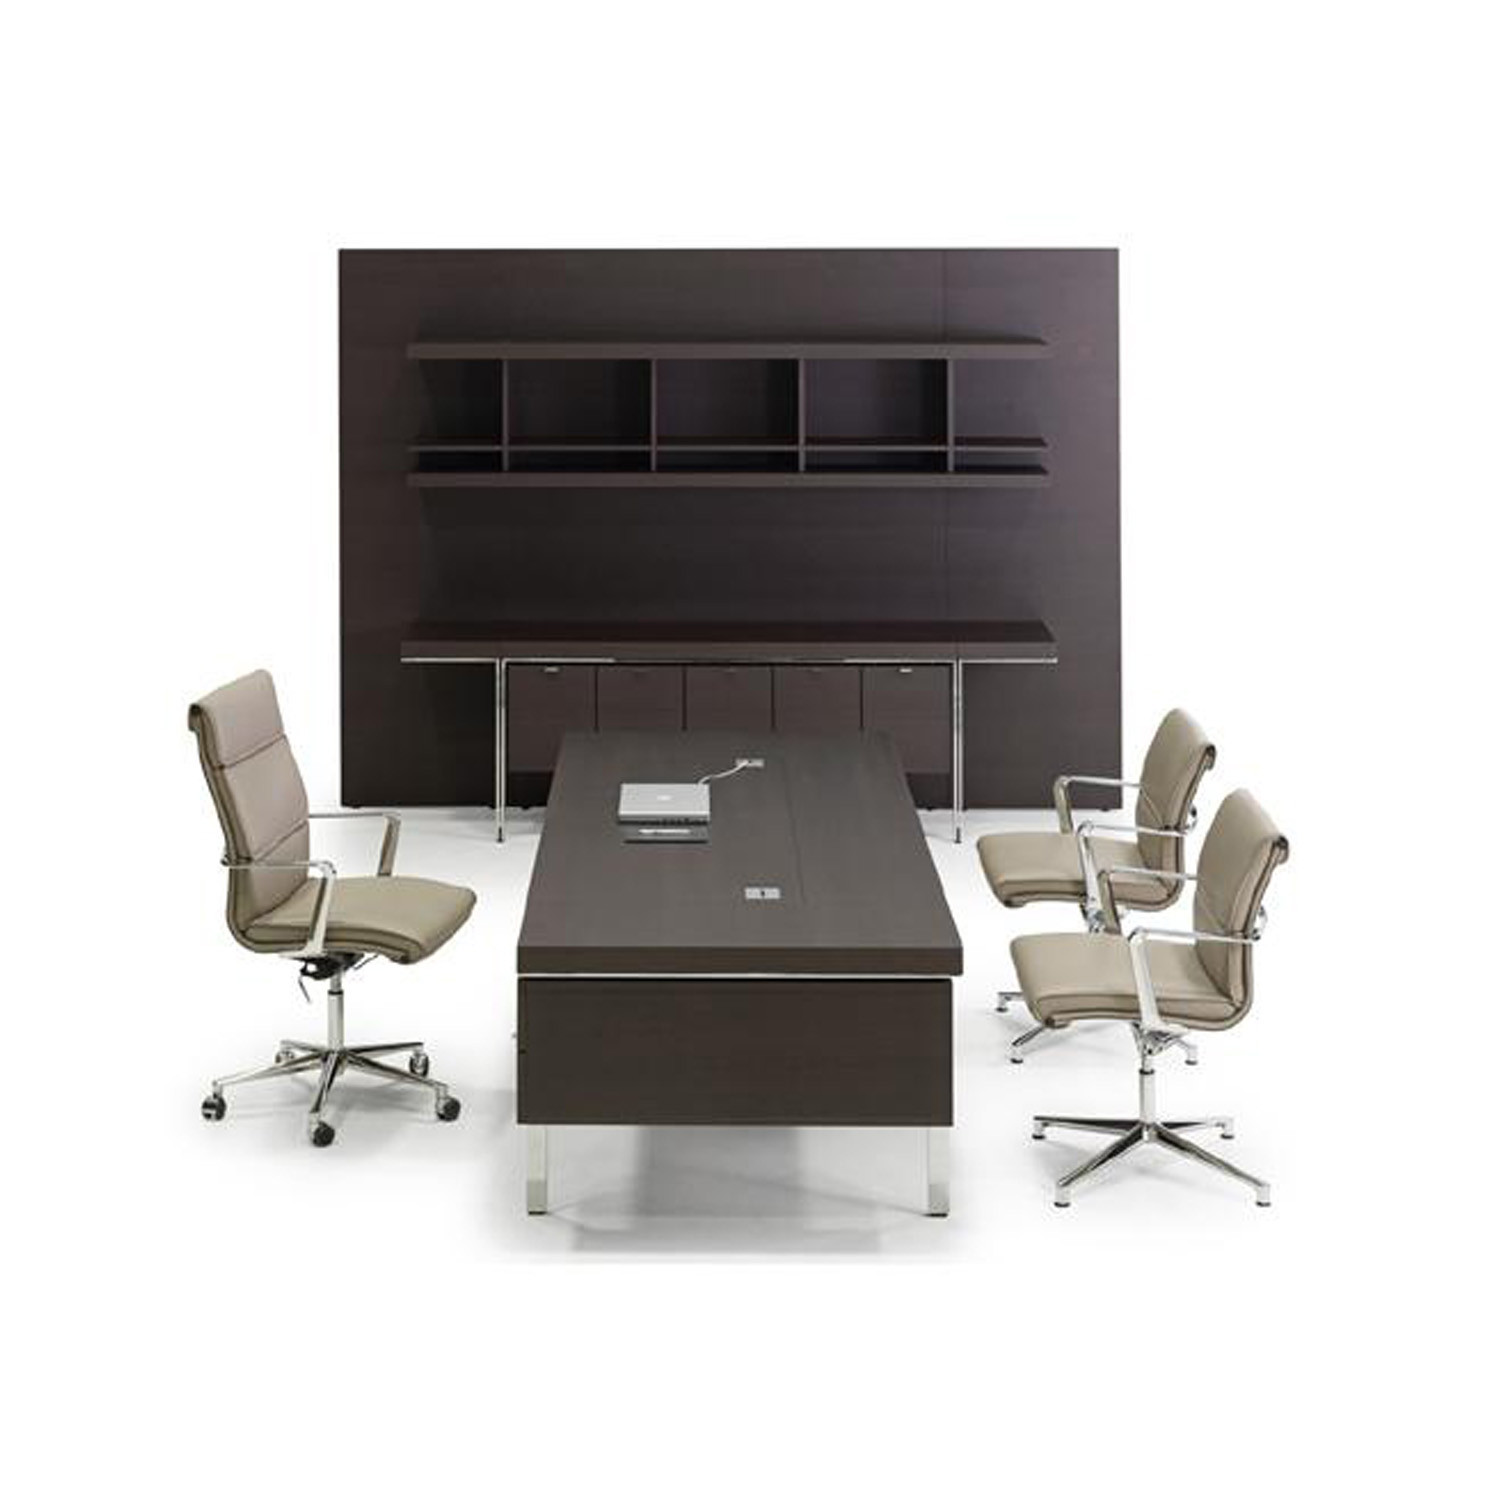 Parallel Executive Group Desk by ICF